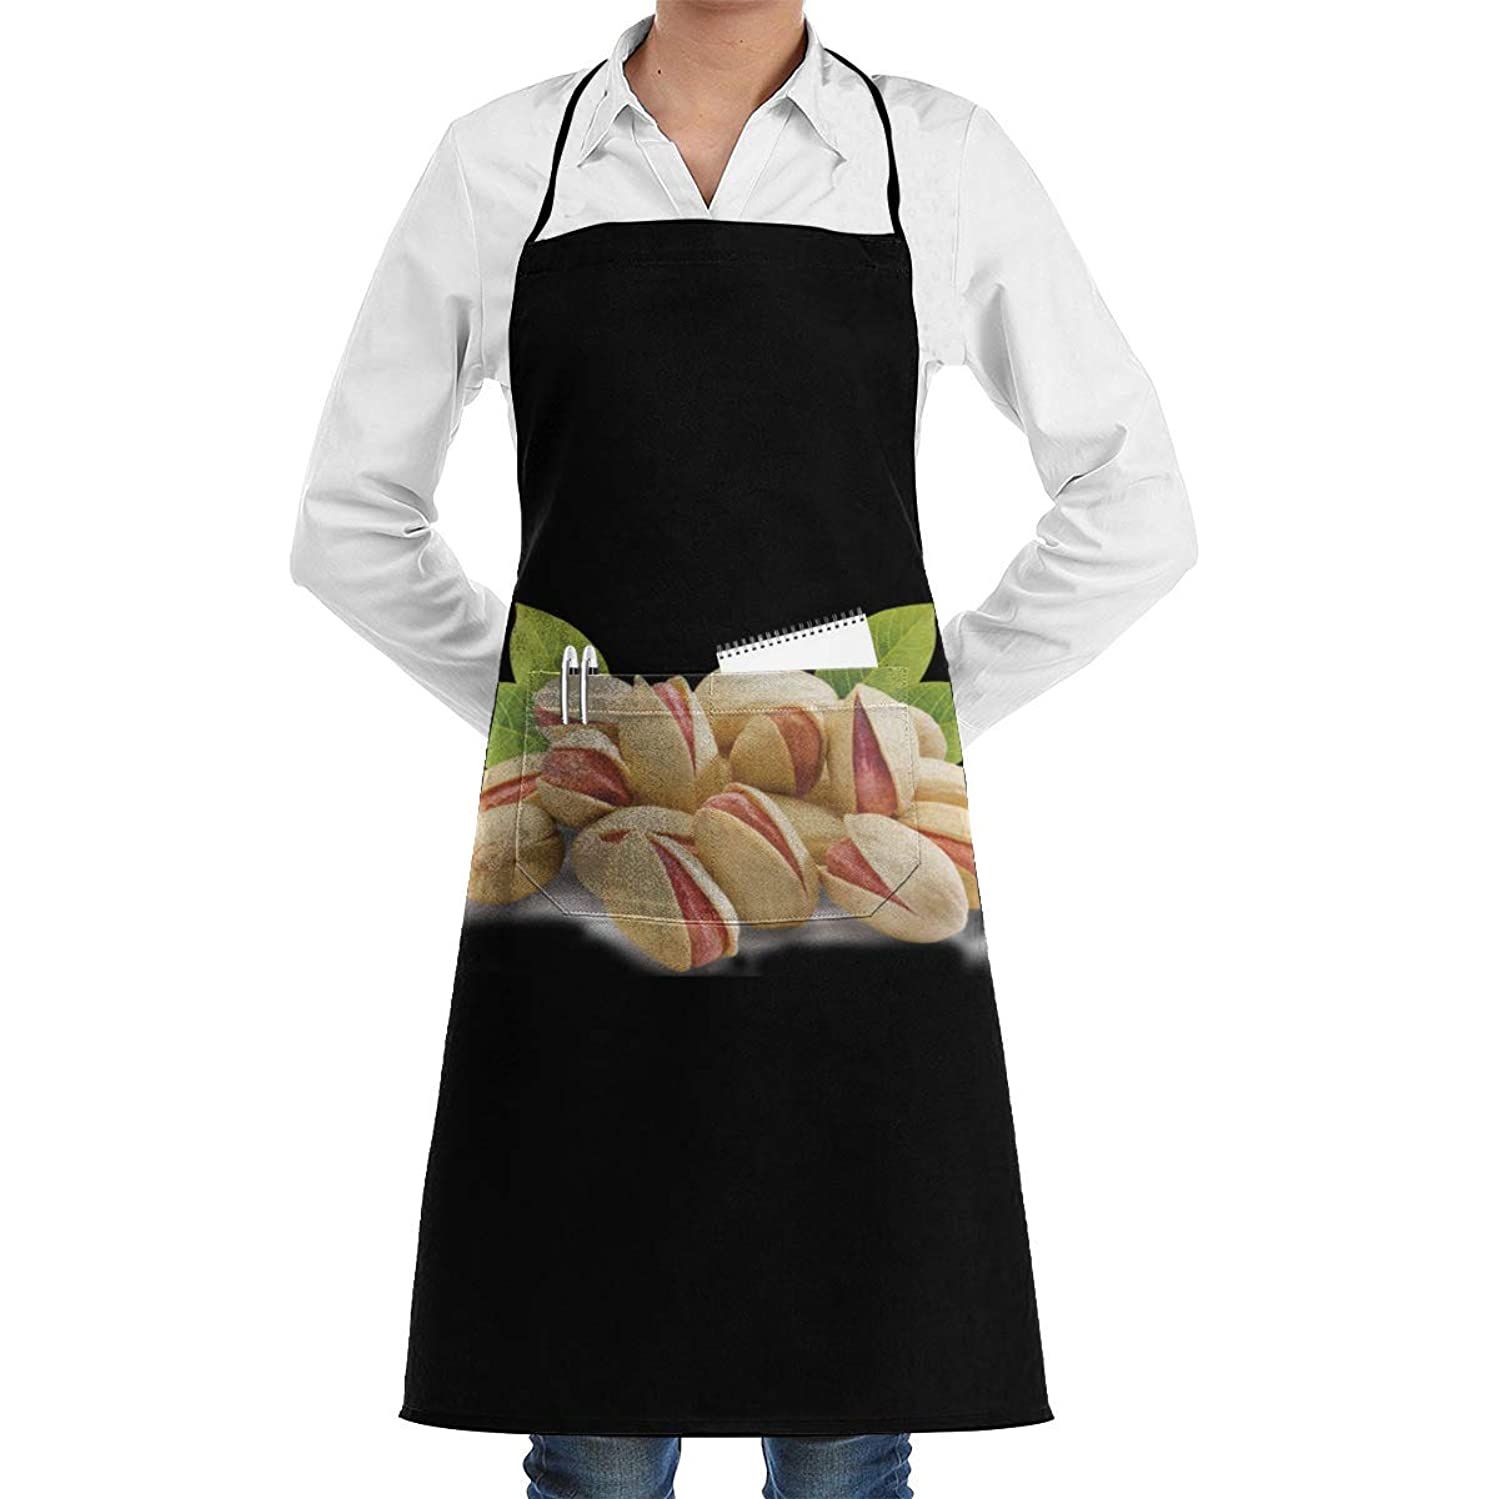 sretinez Adjustable Pistachio Printed Kitchen Bib Apron Chef's Aprons with Pockets for Women Men